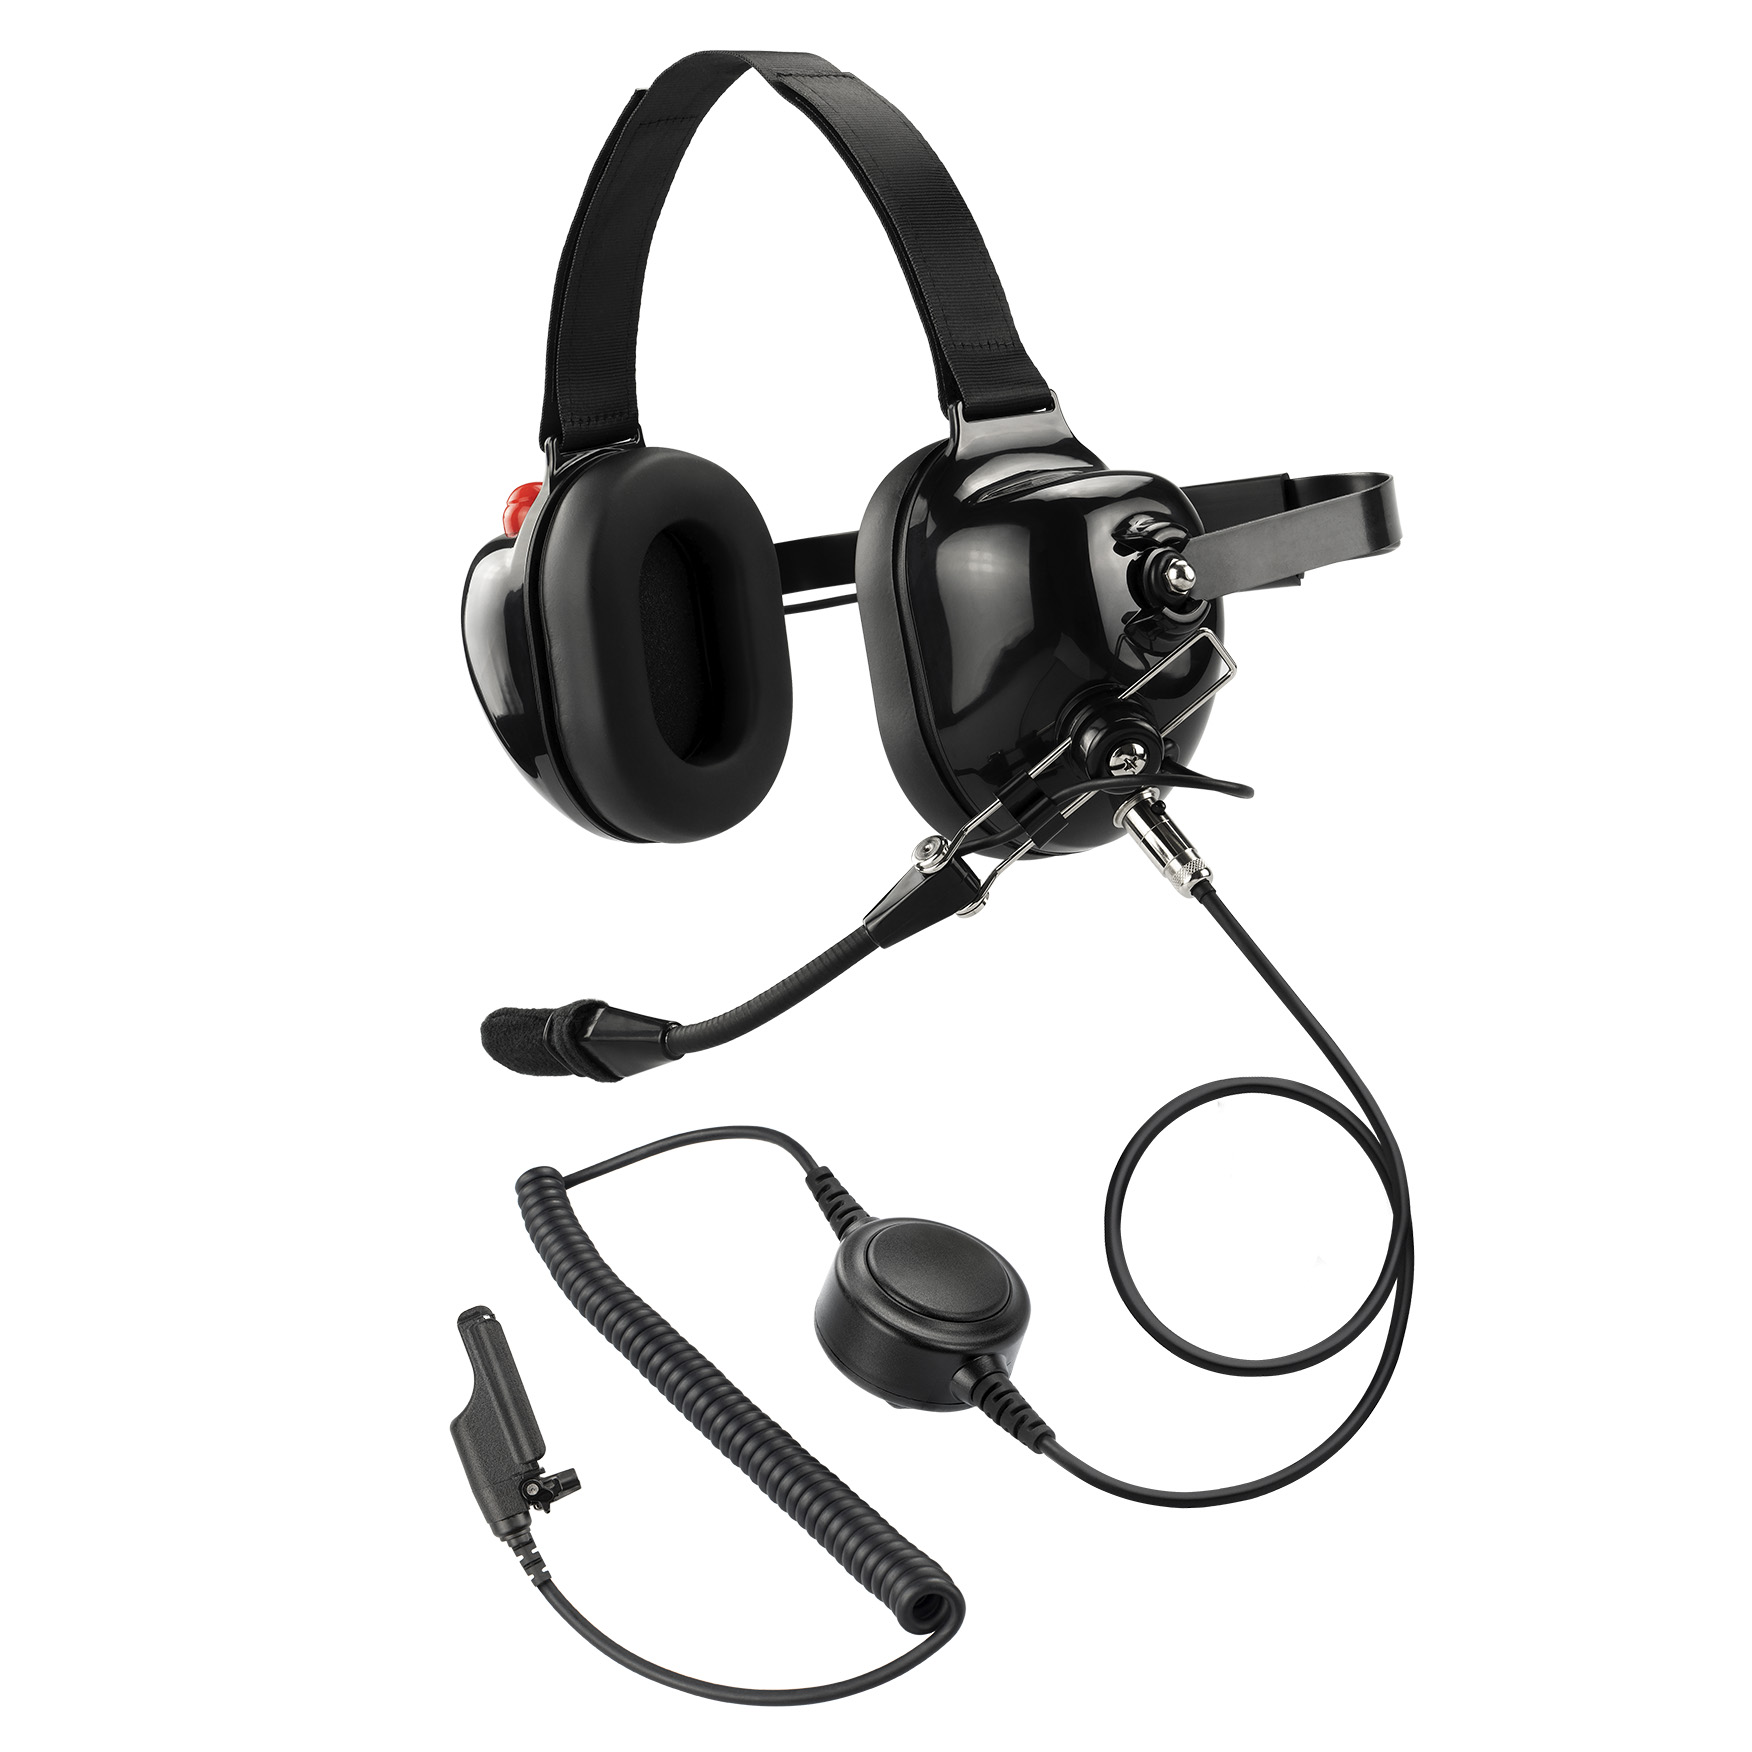 AIRSN XTS2500 Earpiece for Motorola Radio XTS5000 XTS3000 Walkie Talkie with Acoustic Tube and Mic/&PTT Surveillance Headset